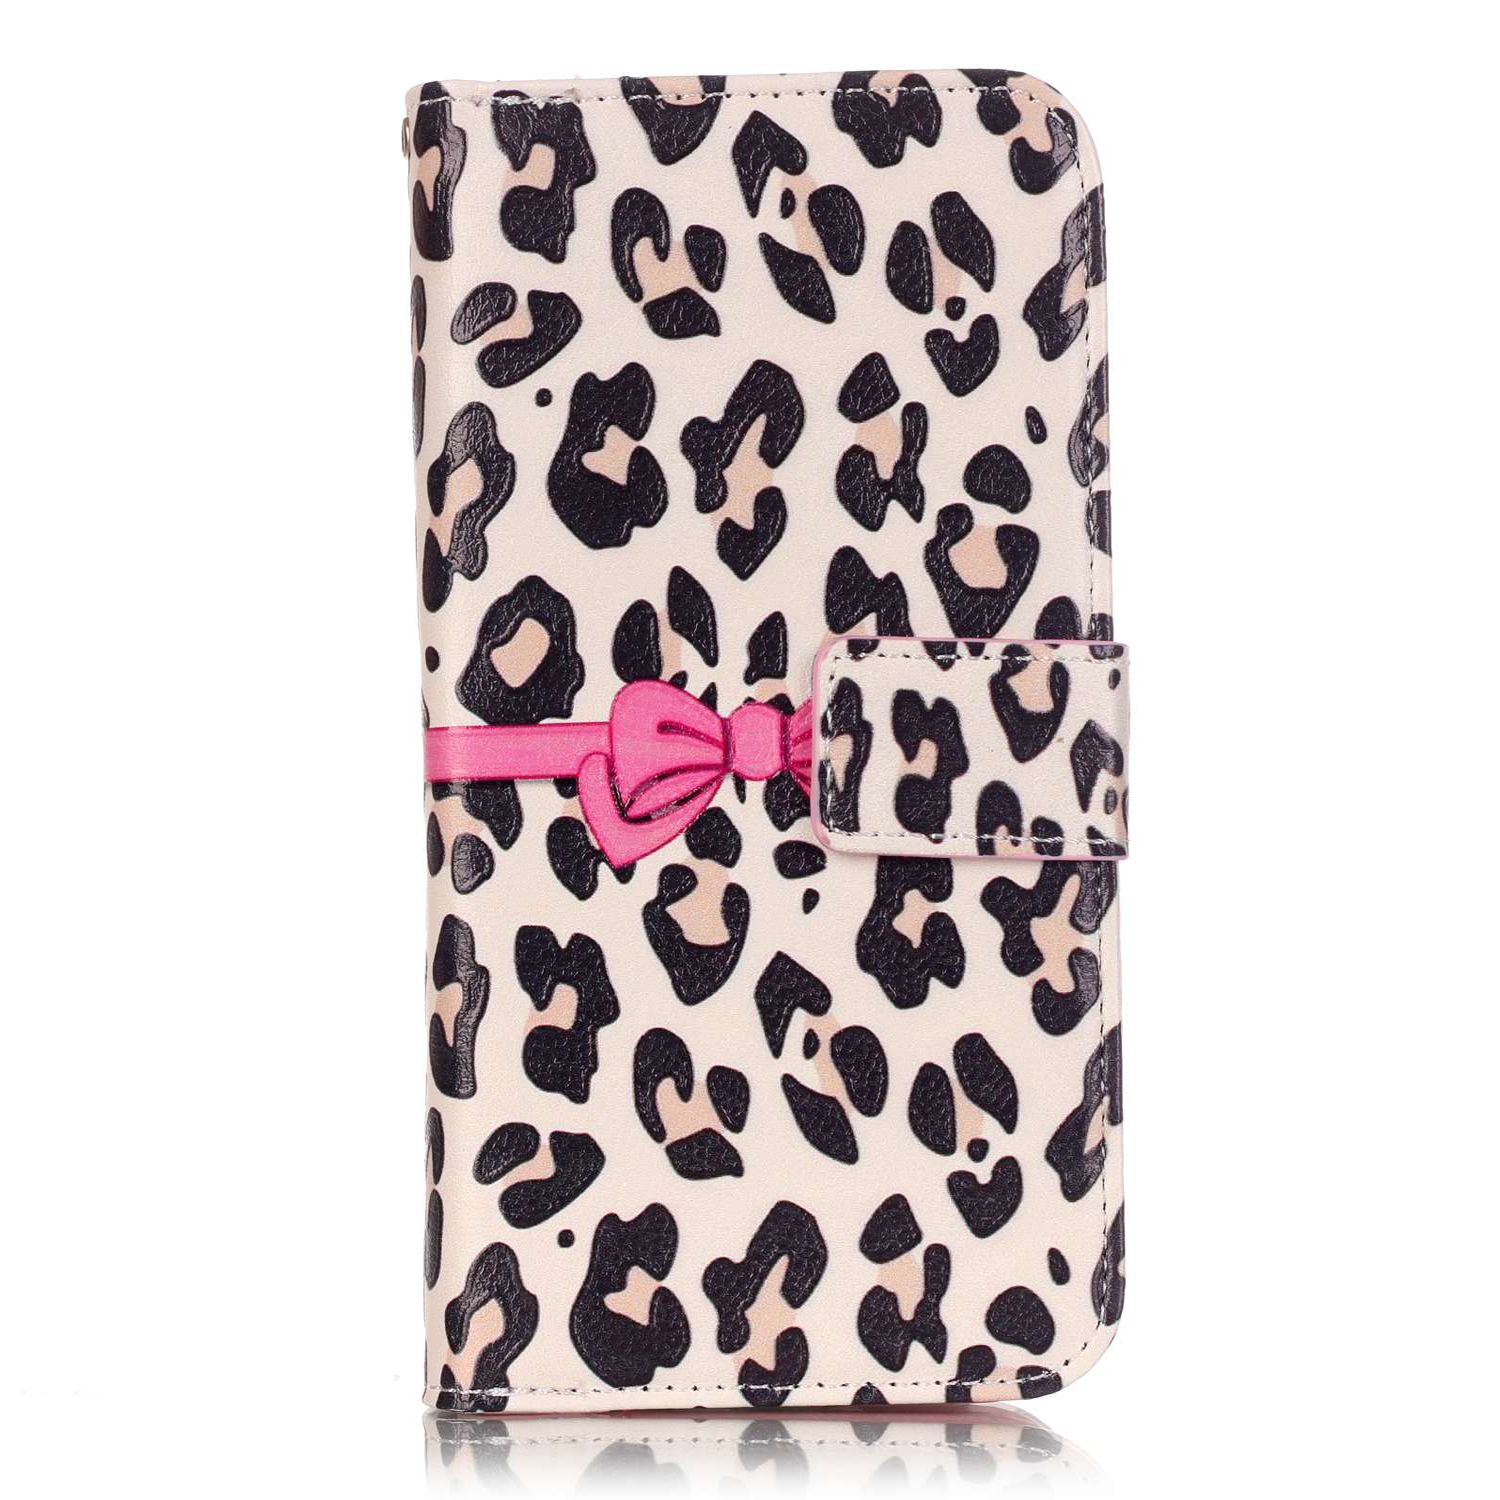 S7 Edge Phone Cases 9 Card Holder Wallet Cases For Samsung Galaxy S7 Edge G935F Luxury PU Leather Flip Case for Samsung S7 Etui